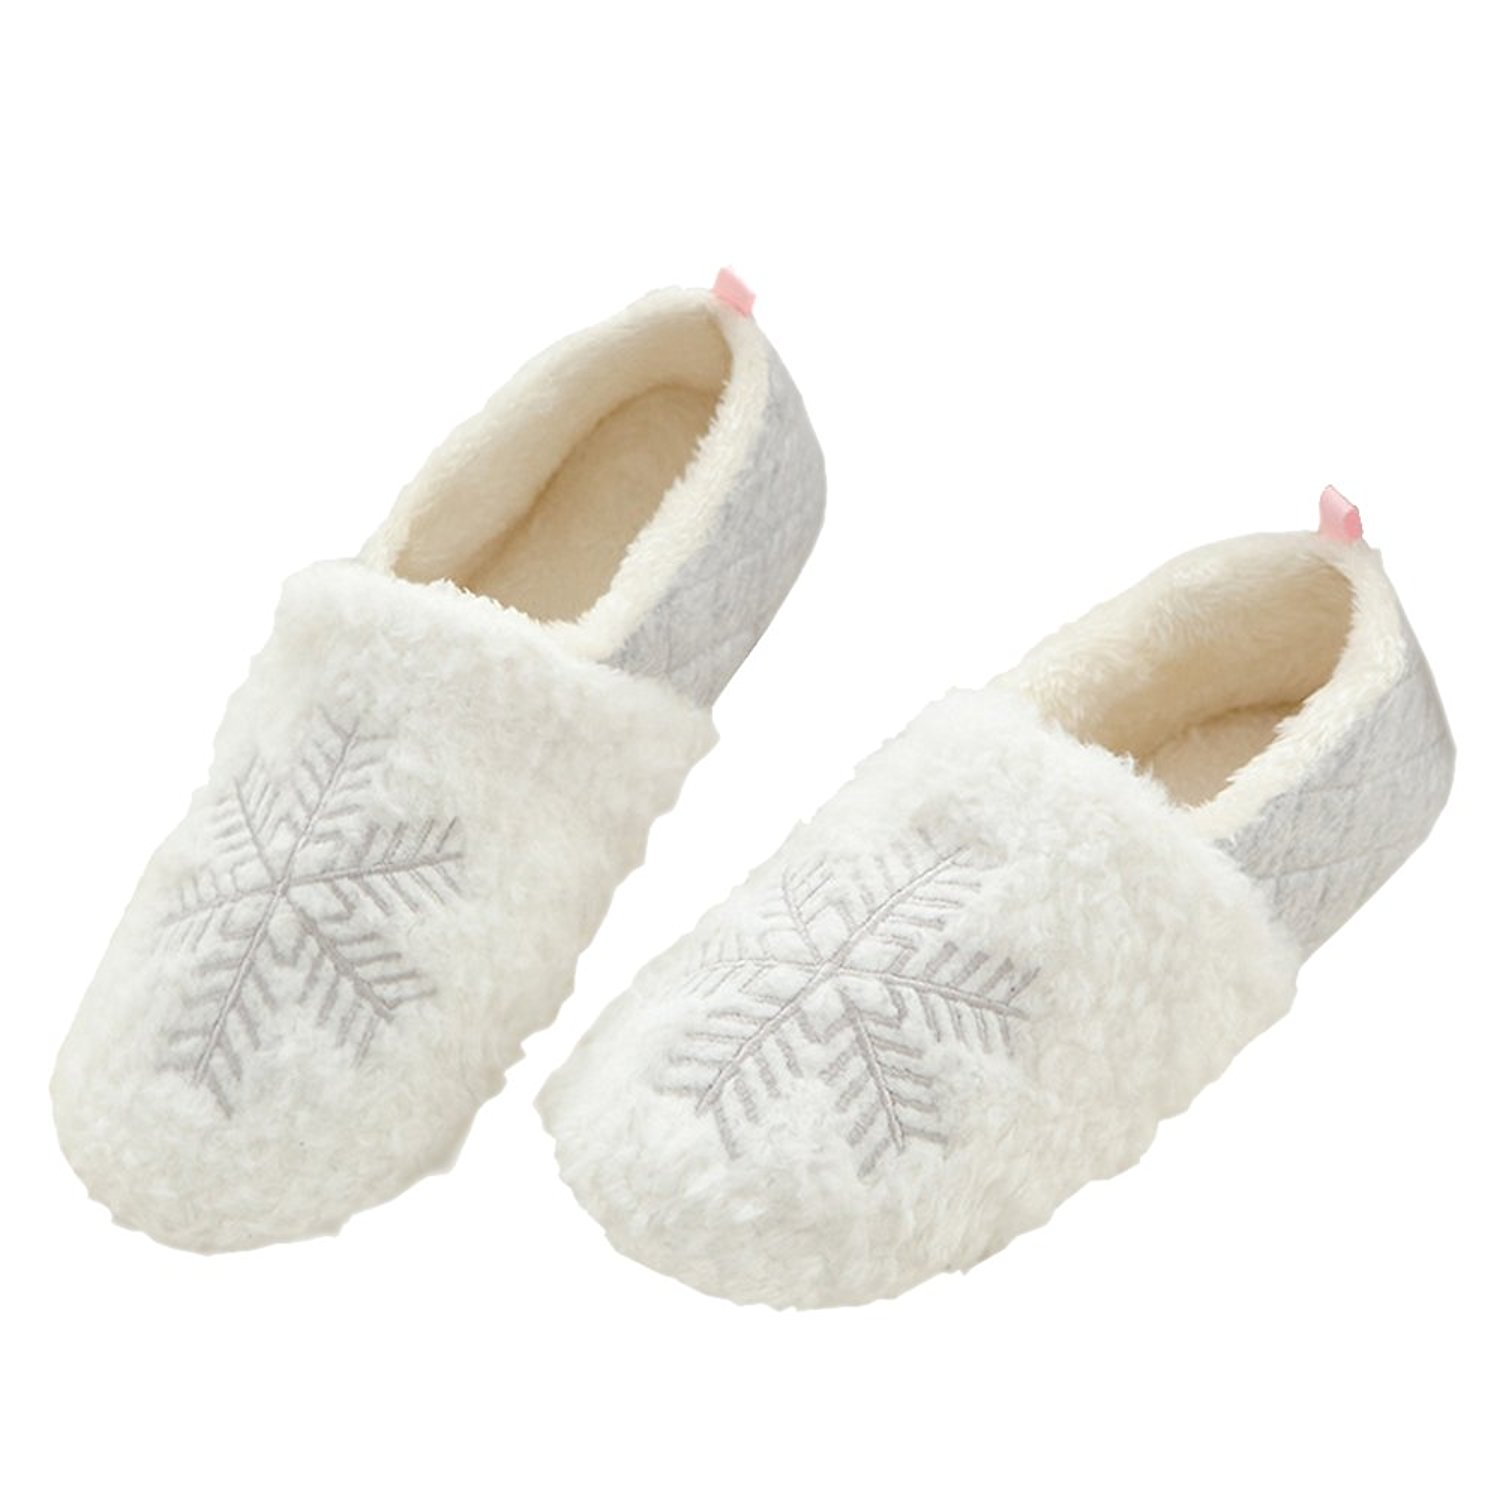 4bfc17a9560 Get Quotations · Rojeam Ladies Slippers Snowflake Slippers Womens House  Indoor Autumn Winter Ladies Comfortable Slip On Memory Foam